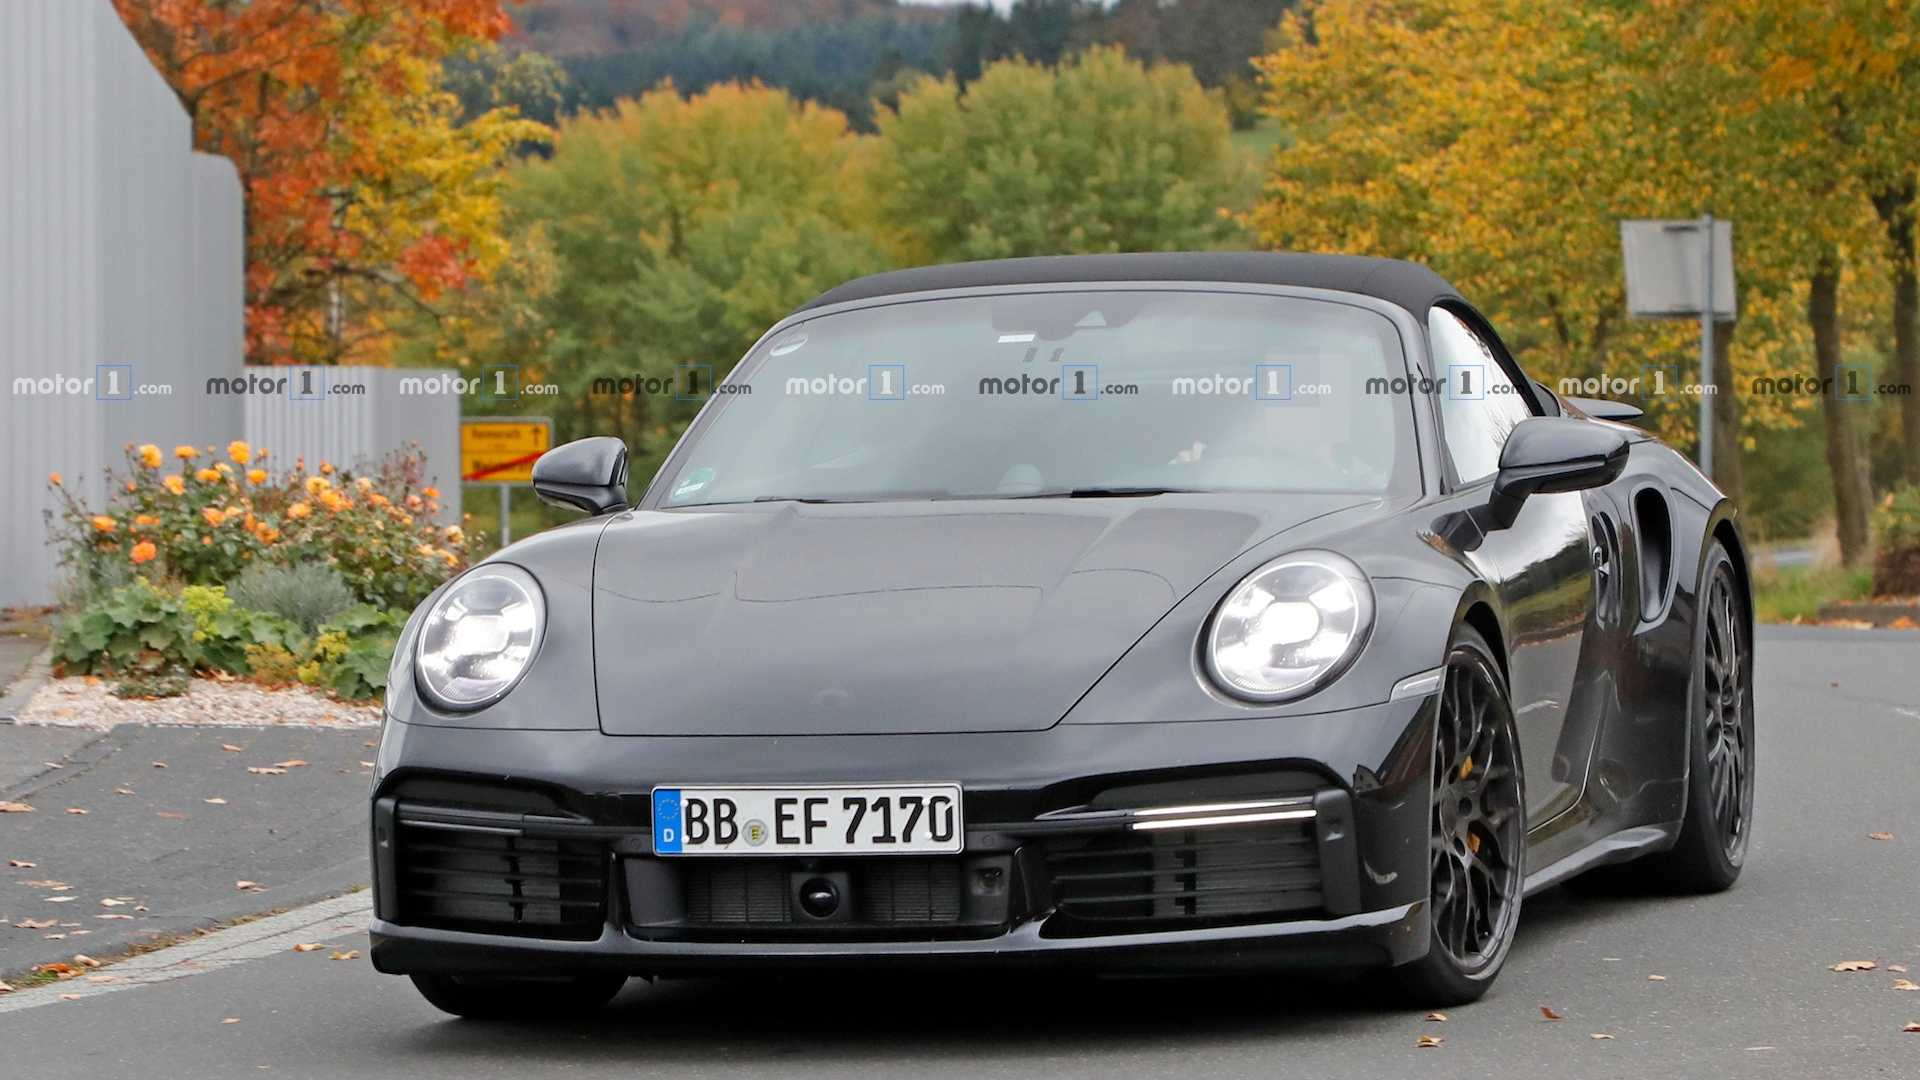 New Porsche 911 Turbo Convertible Caught Nearly Naked